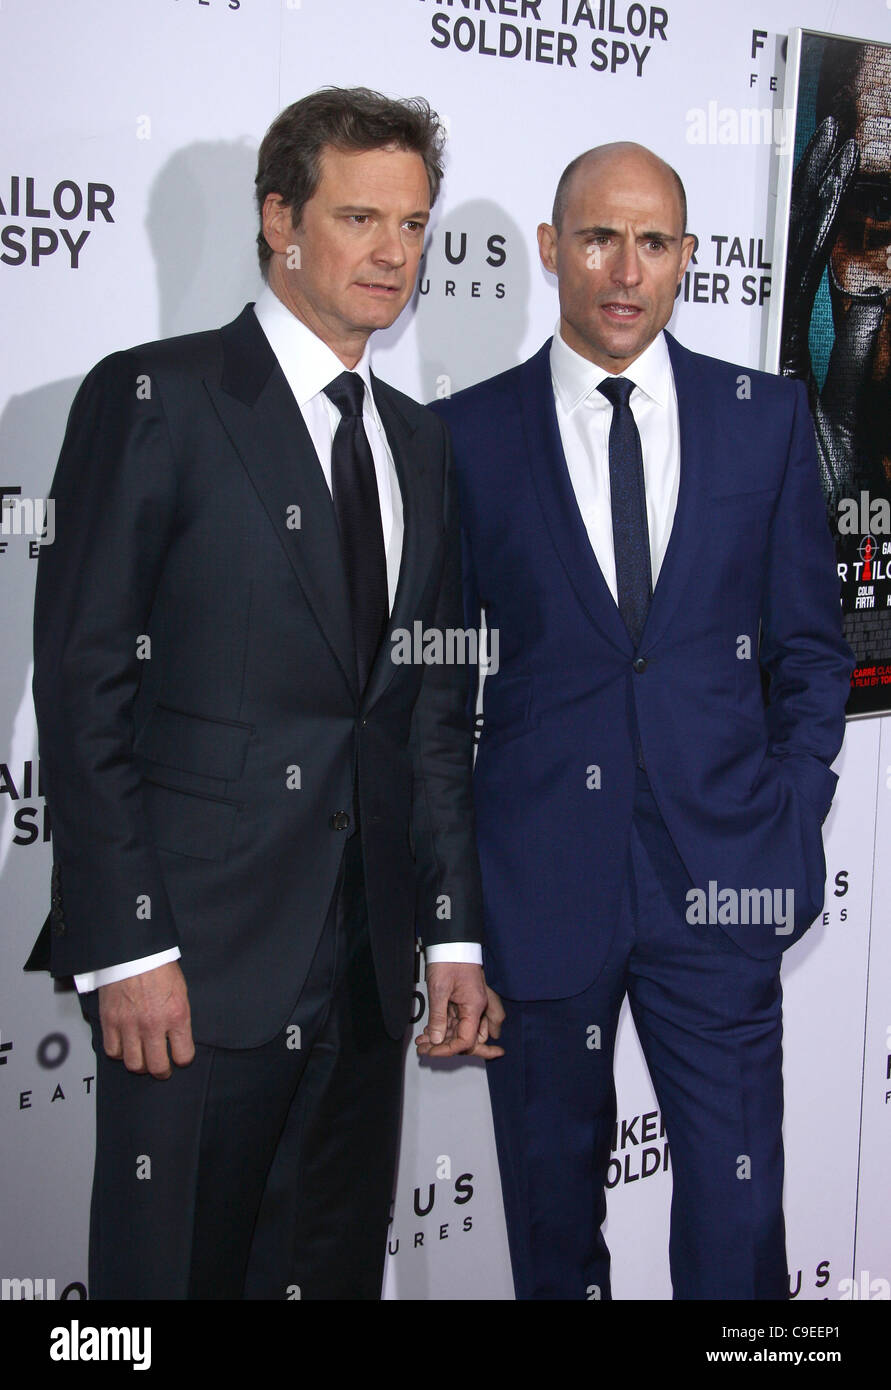 COLIN FIRTH & MARK STARKE TINKER TAILOR SOLDIER SPY. LOS ANGELES PREMIERE HOLLYWOOD LOS ANGELES Kalifornien Stockbild